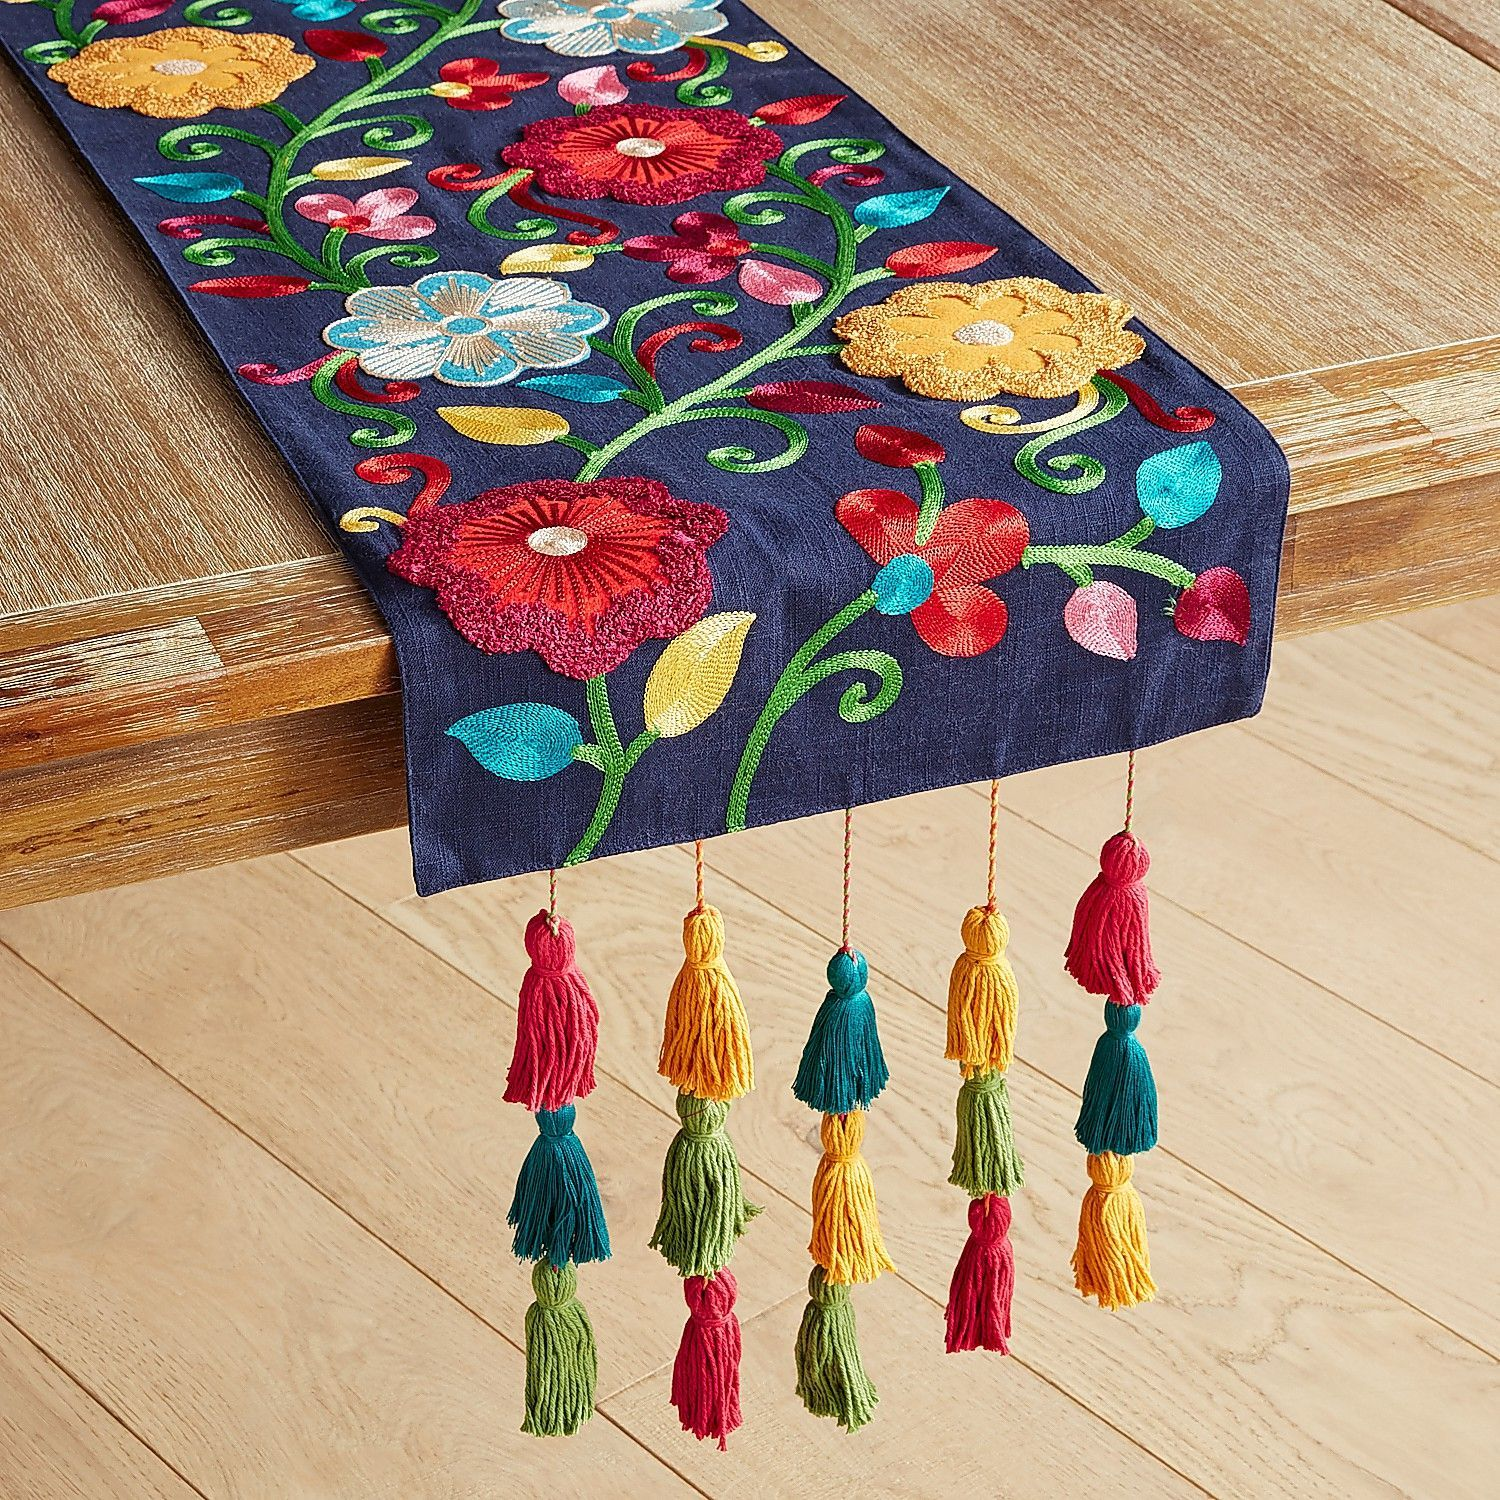 Fiesta Floral Table Runners Pier 1 Imports Applique Table